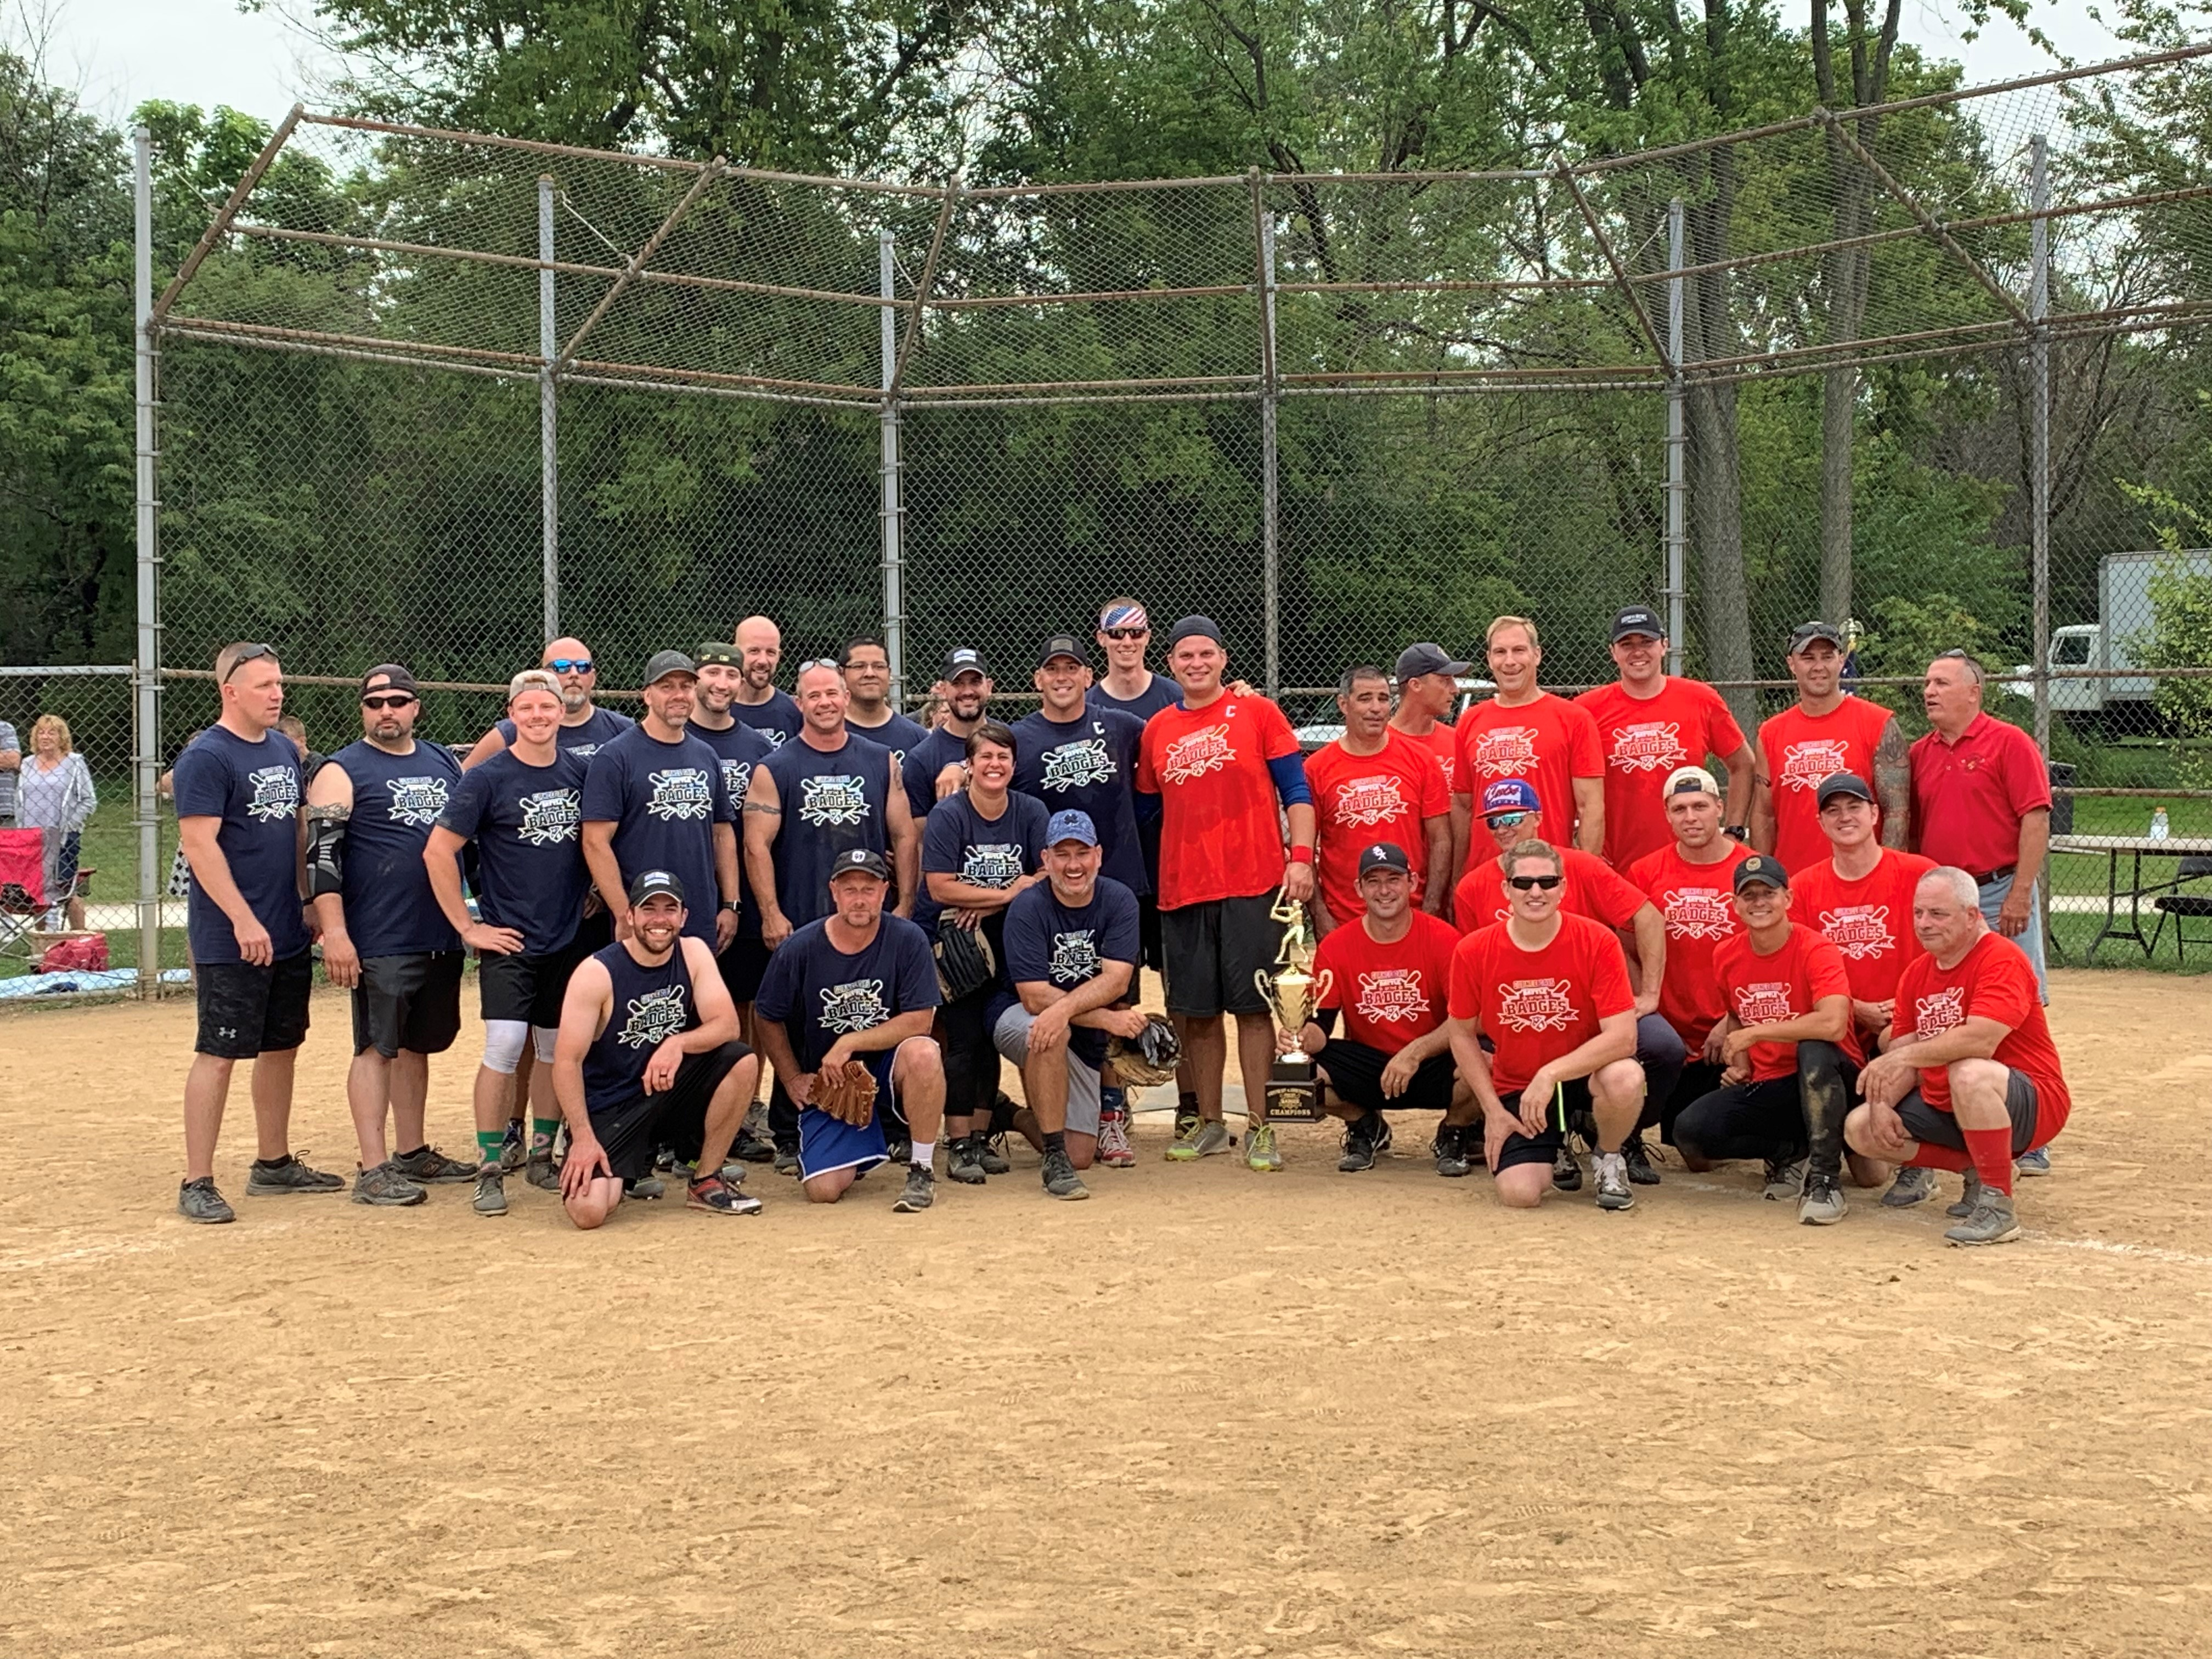 Battle of the Badges Softball Game Results